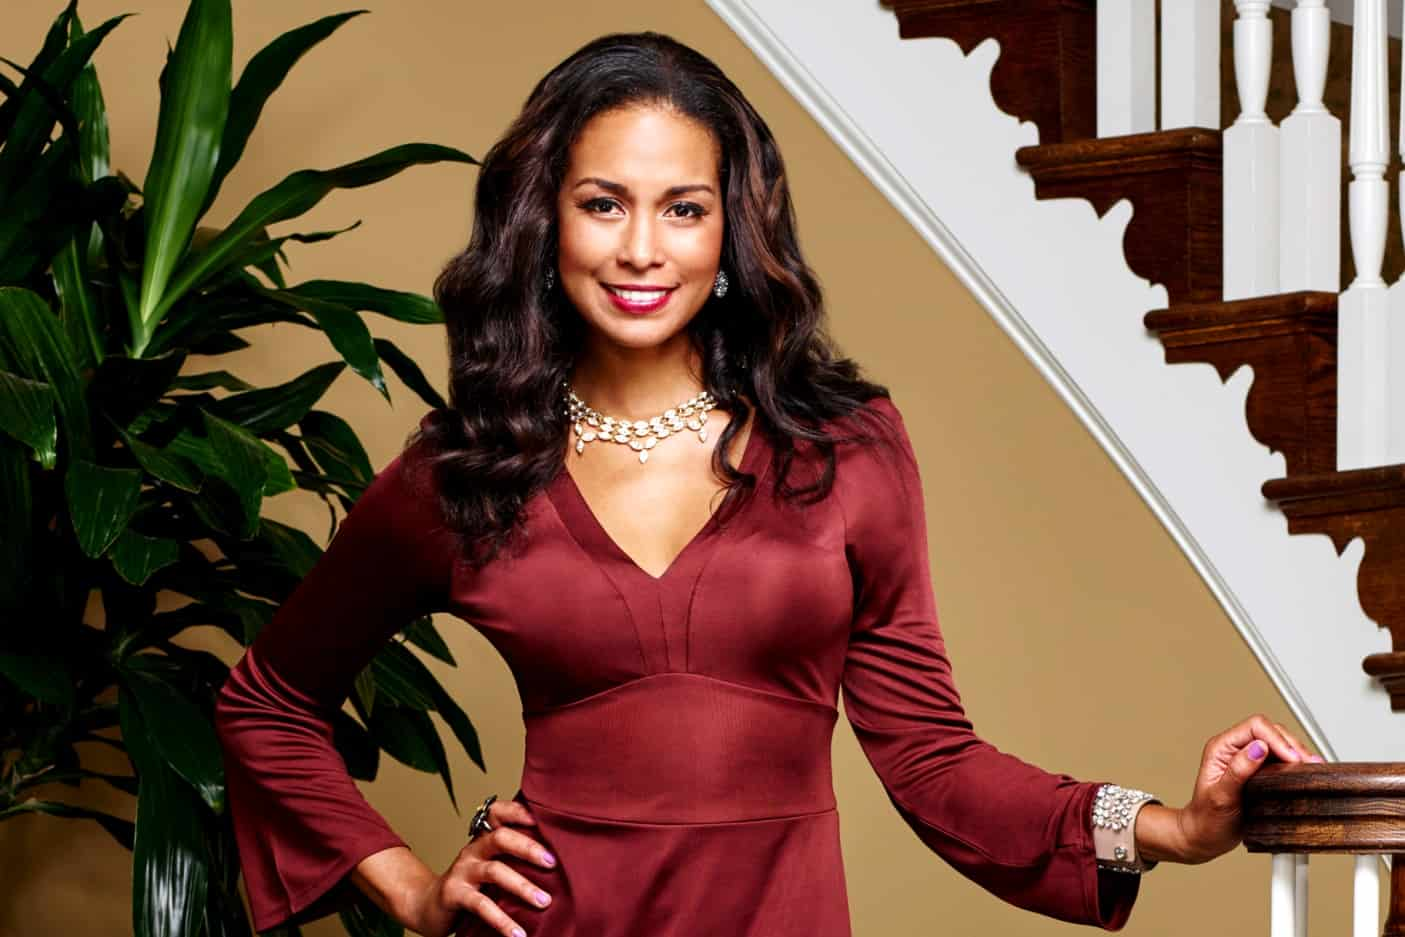 RHOP Katie Rost Custody Issues